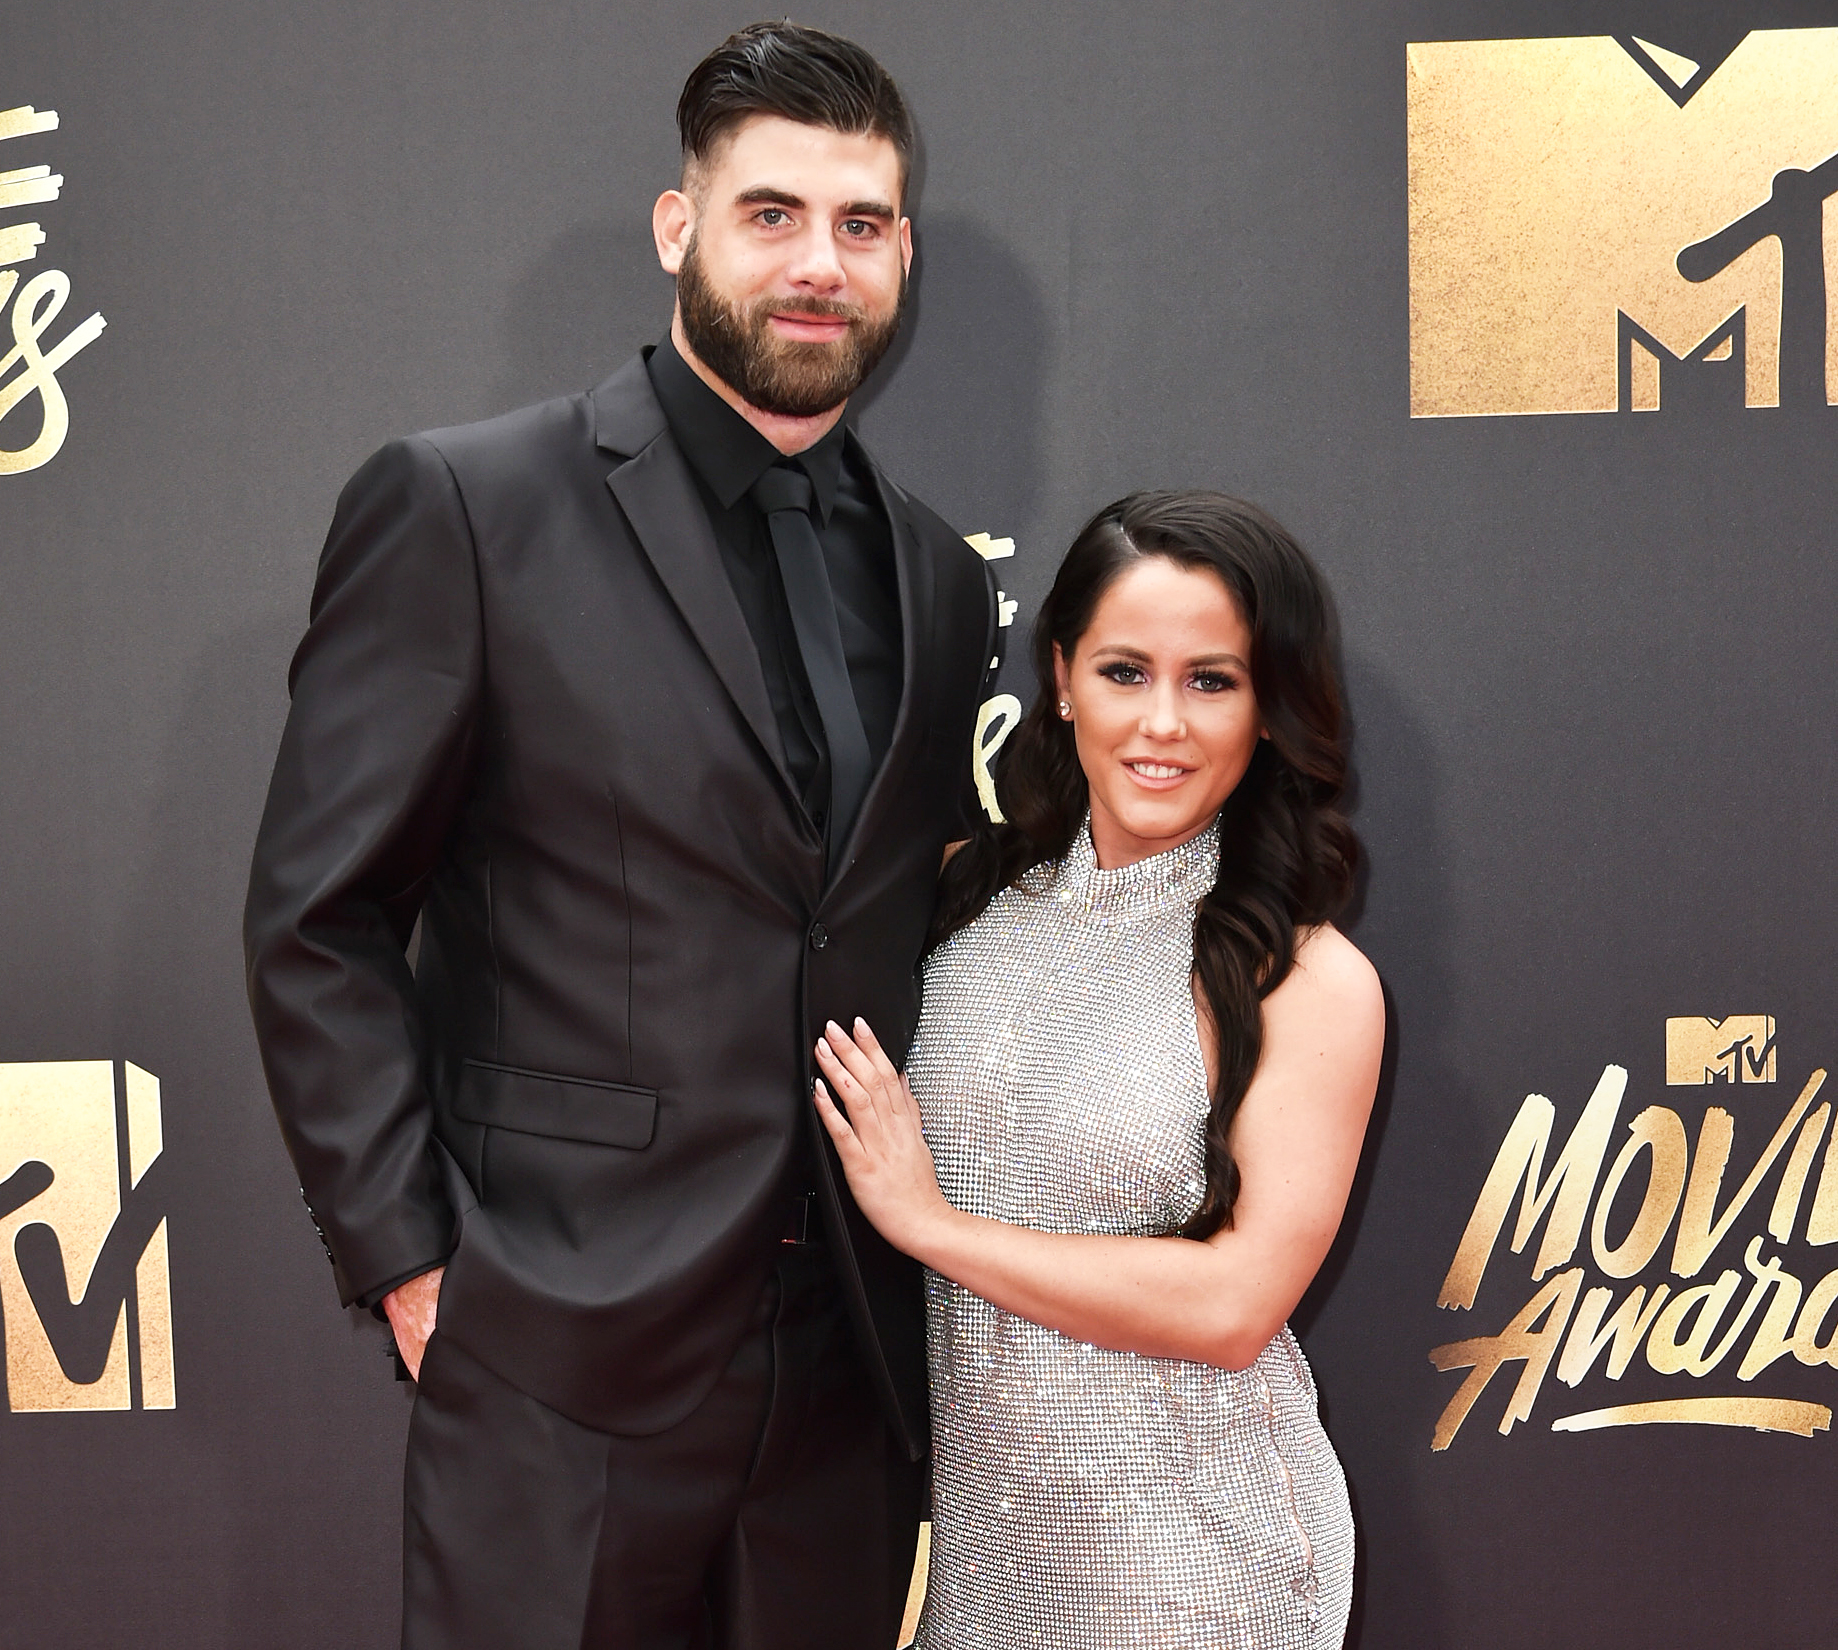 Jenelle Evans Reunites With Husband David Eason After Their Split Following His Arrest